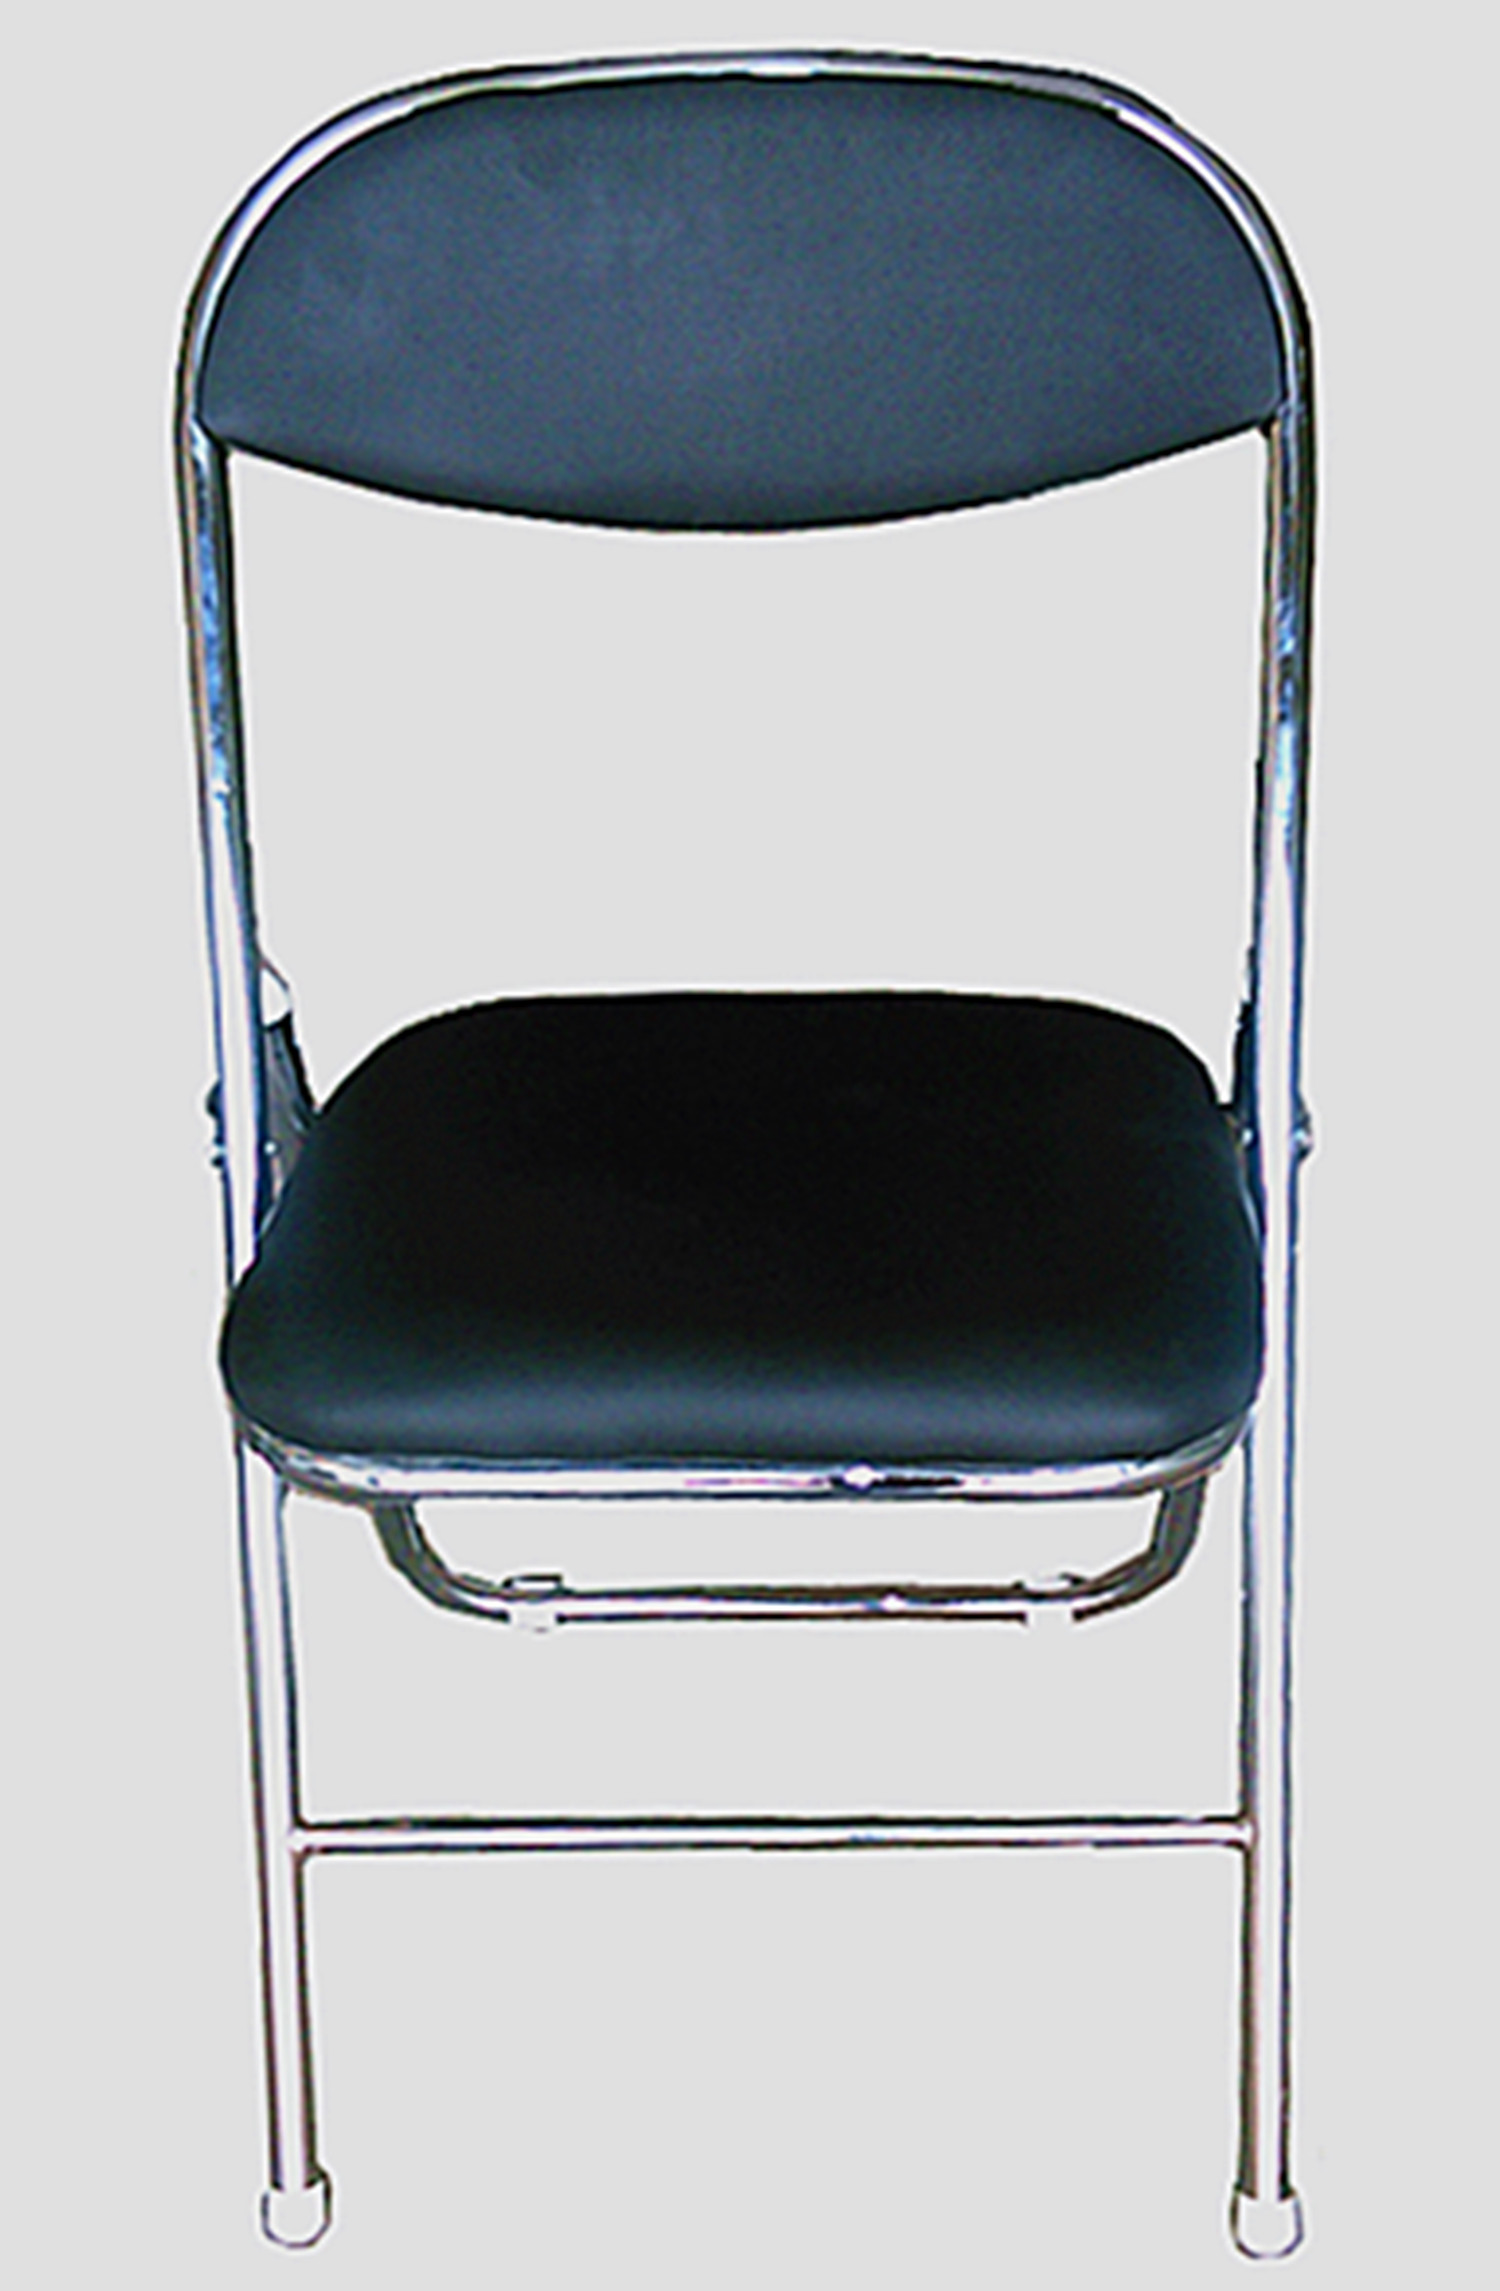 black padded folding chairs mechanic creeper chair chrome framed melbourne table